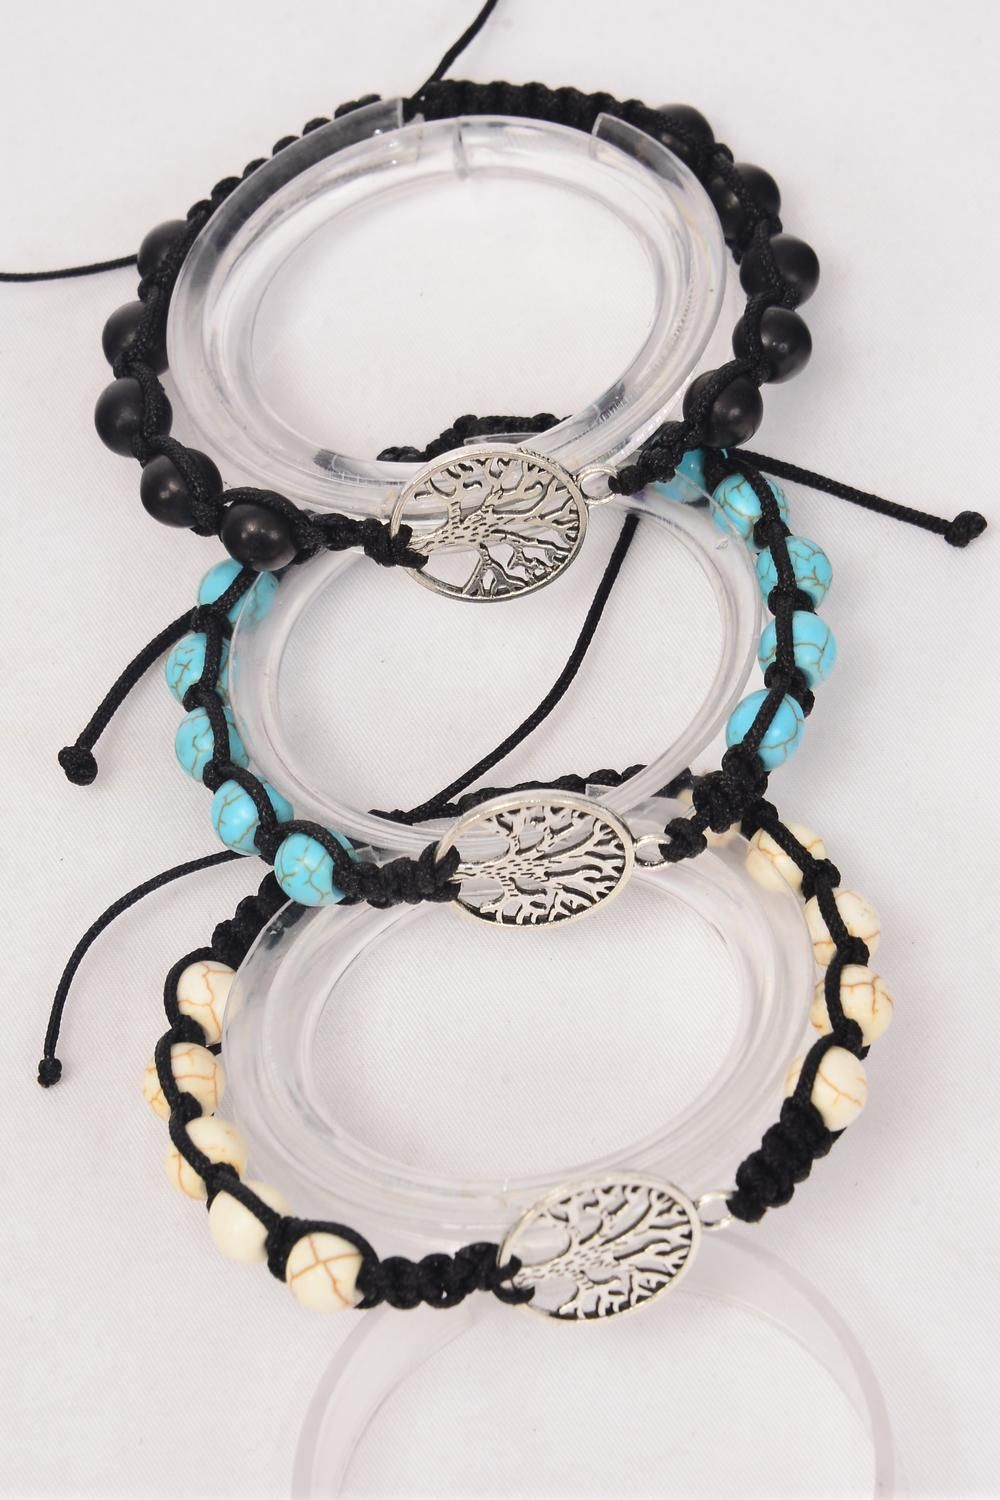 Bracelet Braided Rope Tree Of Life 8 mm Semiprecious Stone/DZ **Adjustable** 4 Black,4 Ivory,4 Turquoise Asst,Hang Tag & OPP Bag & UPC Code